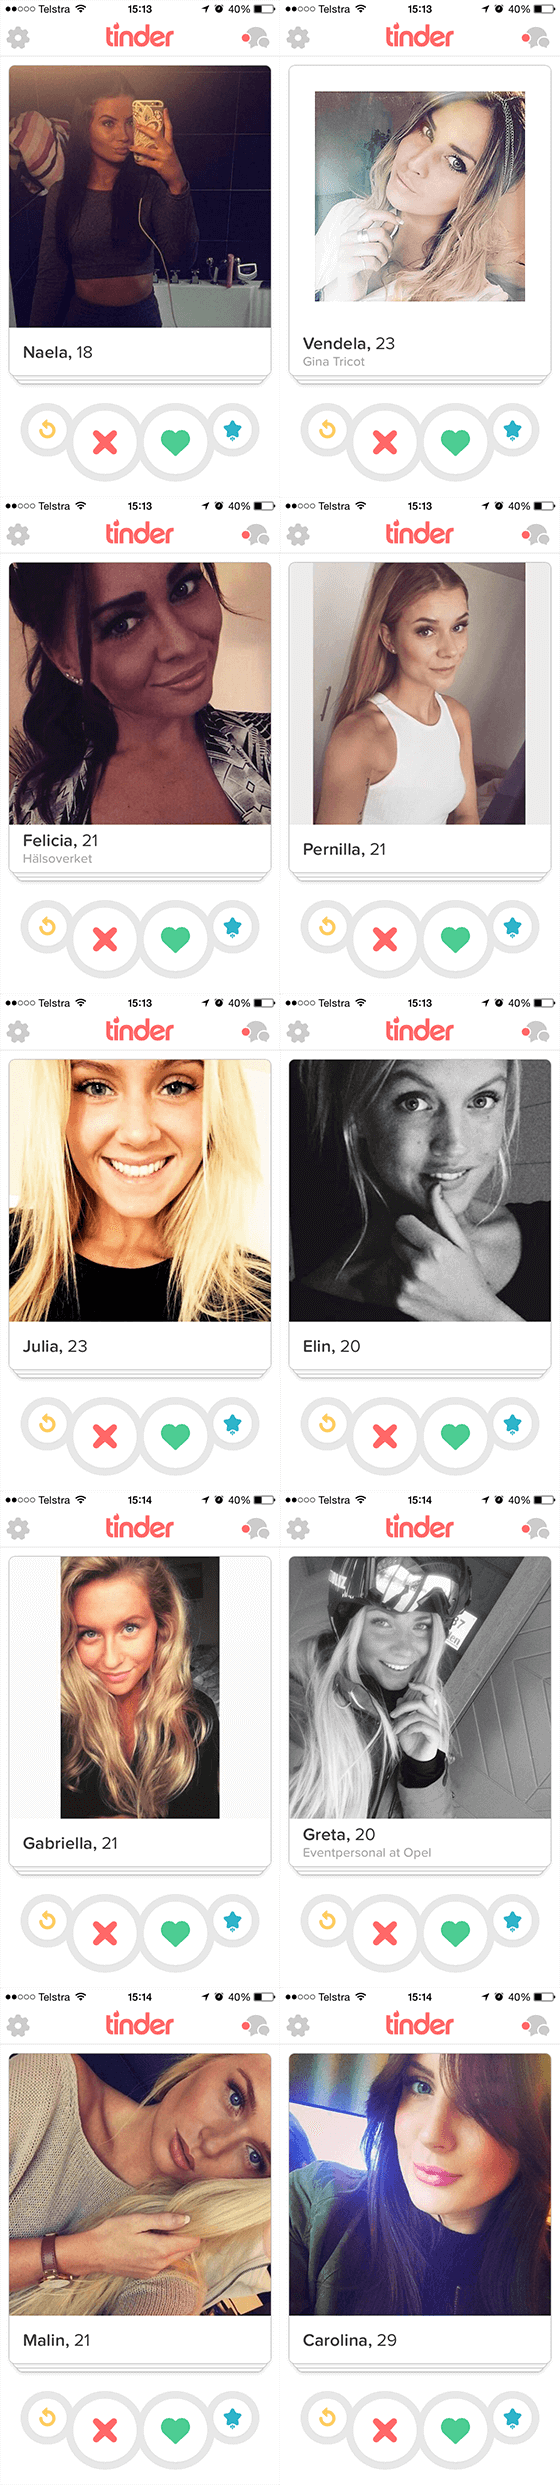 Hottest-Popular-Tinder-women-in-Stockholm-Sweden